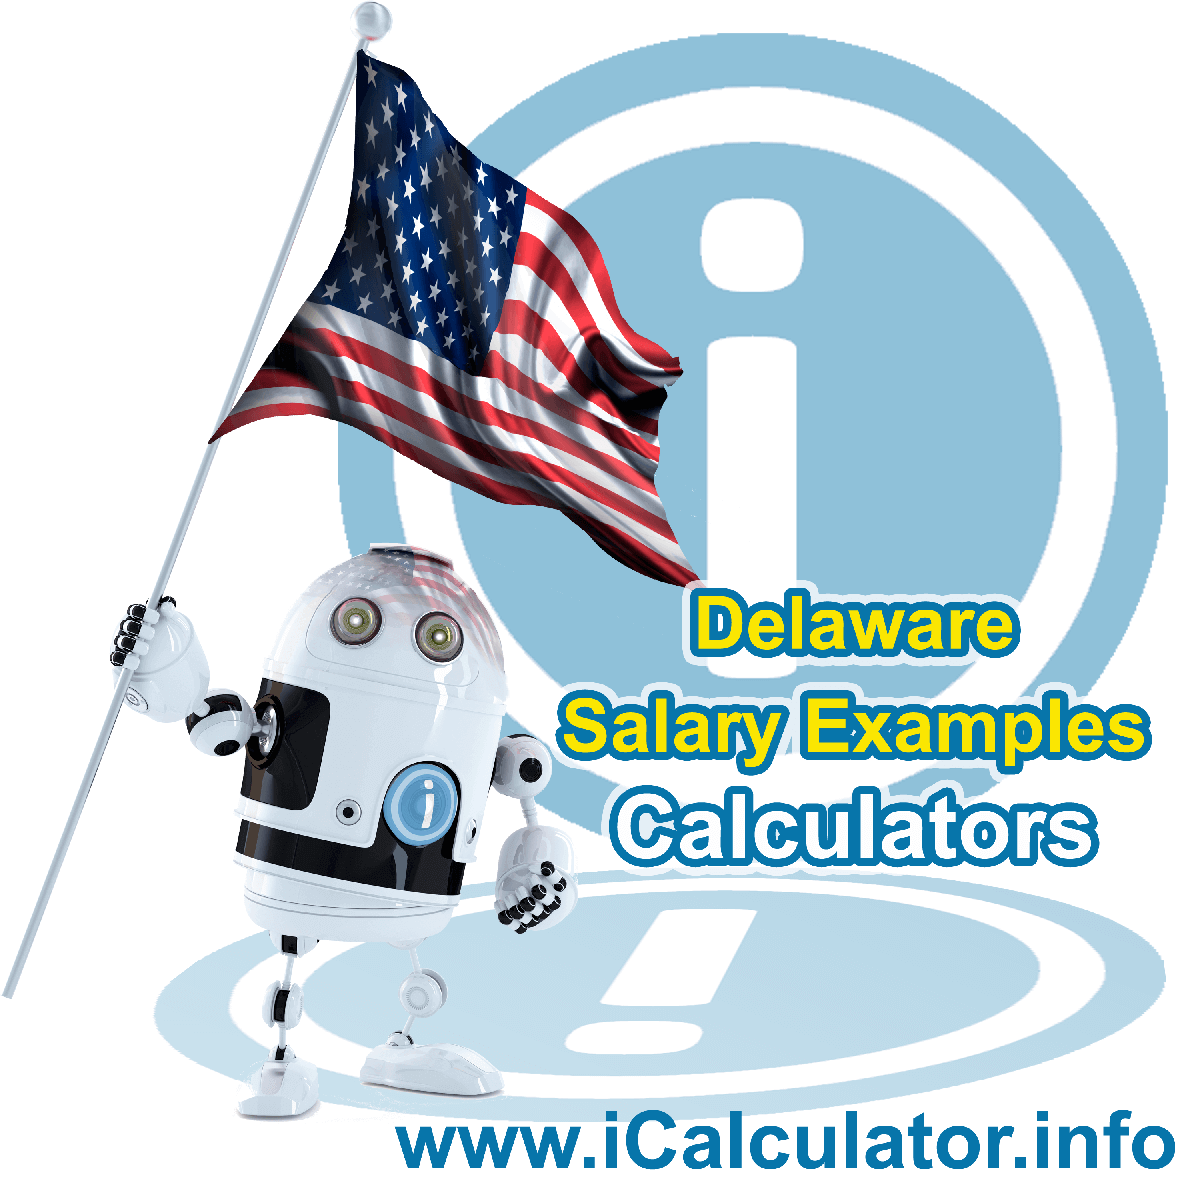 Delaware Salary Example for $230.00 in 2020 | iCalculator | $230.00 salary example for employee and employer paying Delaware State tincome taxes. Detailed salary after tax calculation including Delaware State Tax, Federal State Tax, Medicare Deductions, Social Security, Capital Gains and other income tax and salary deductions complete with supporting Delaware state tax tables